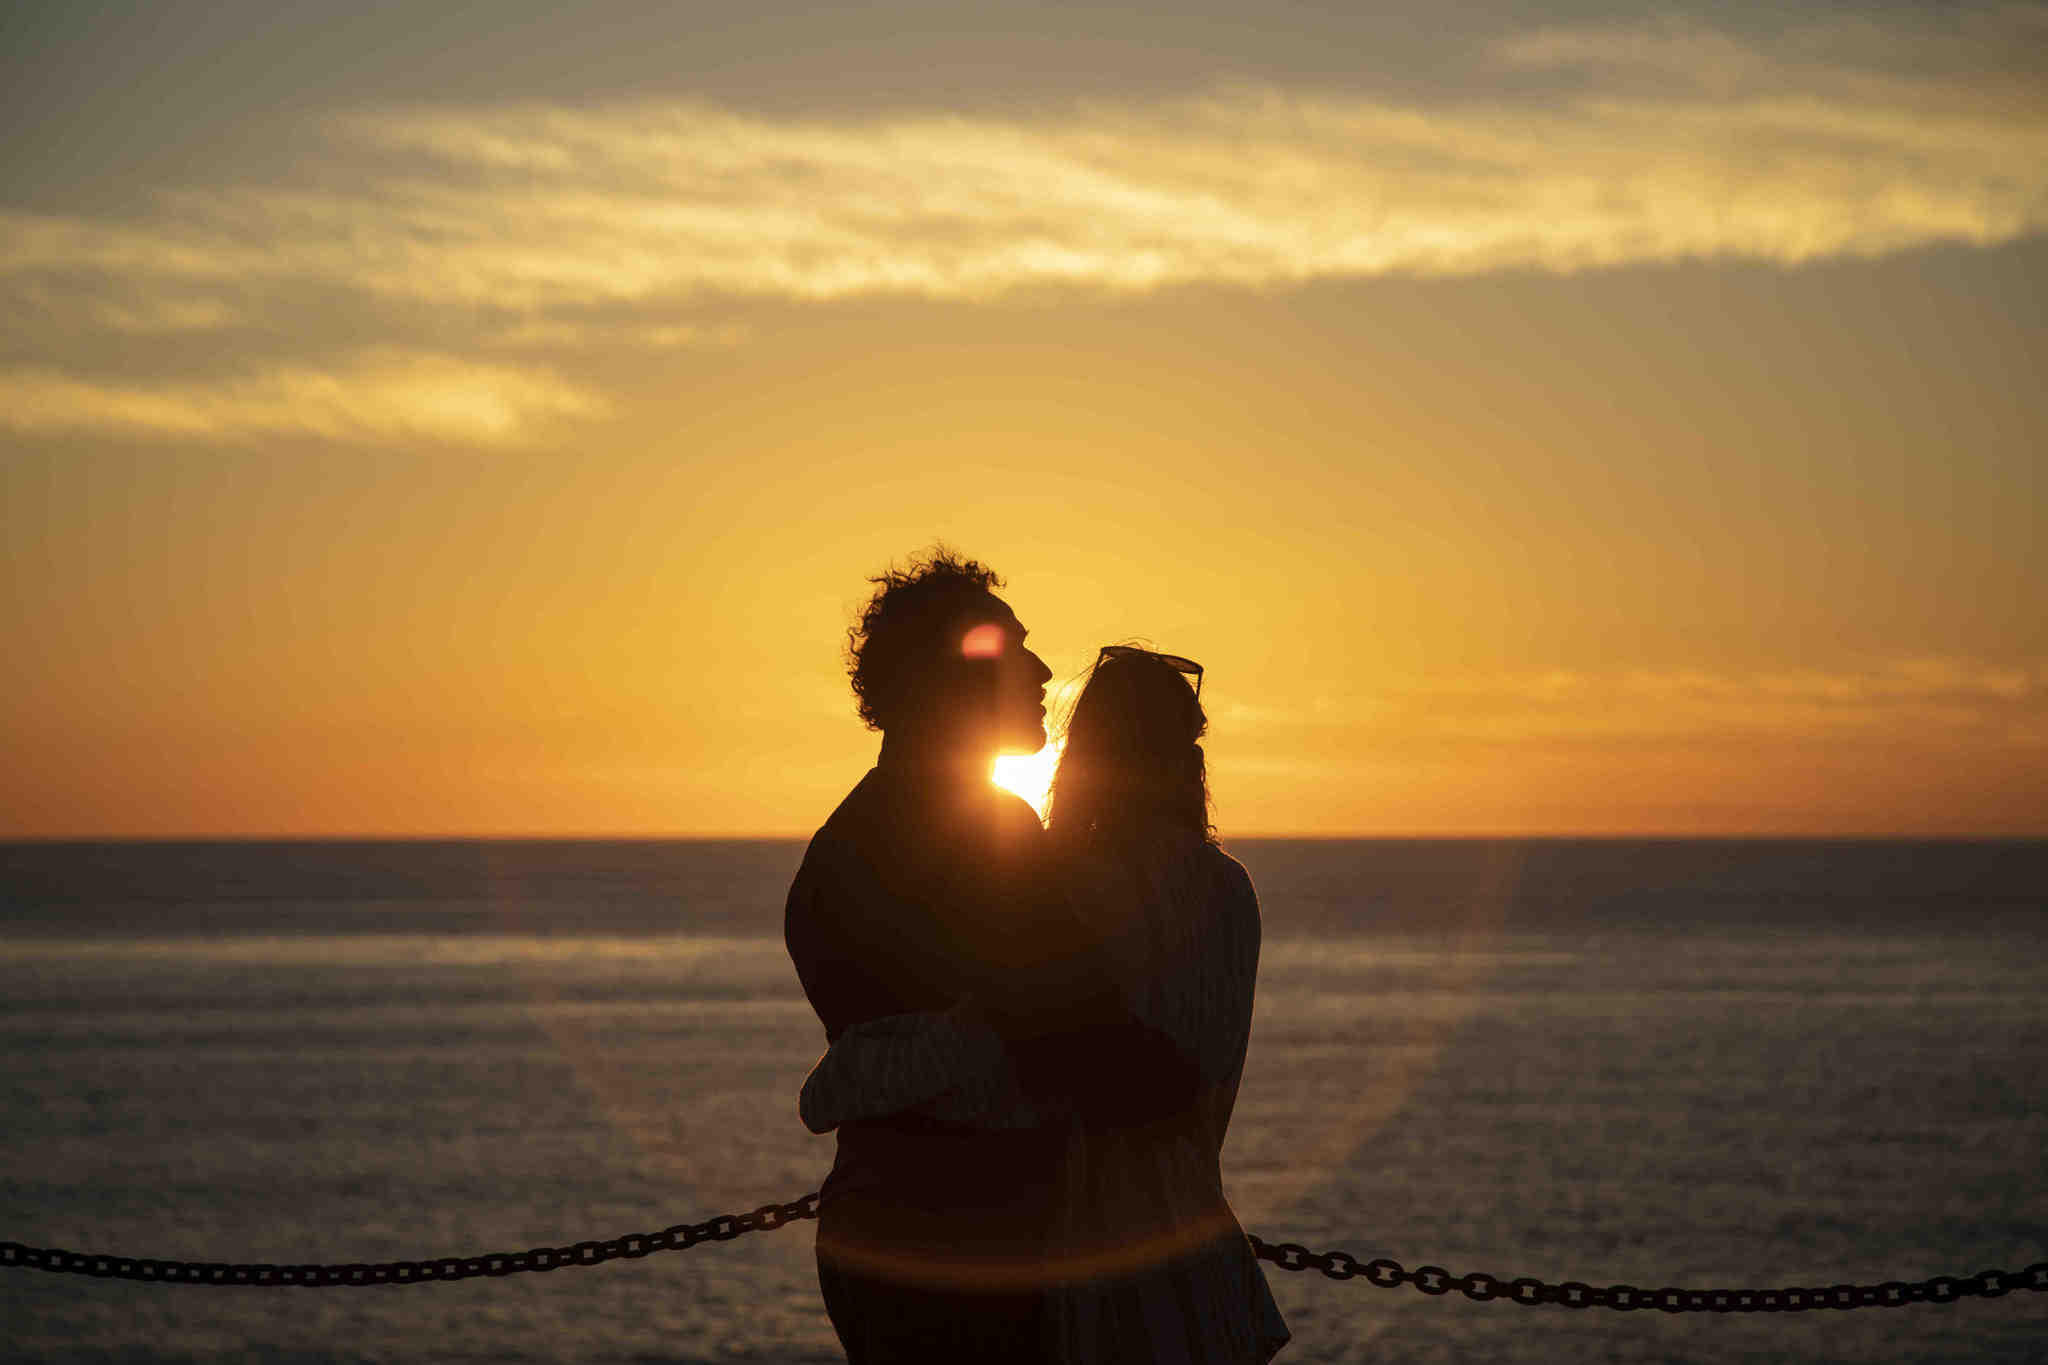 SAN DIEGO, CA - February 27, 2019 - A couple watching the sunset at Sunset Cliffs Natural Park in Sa